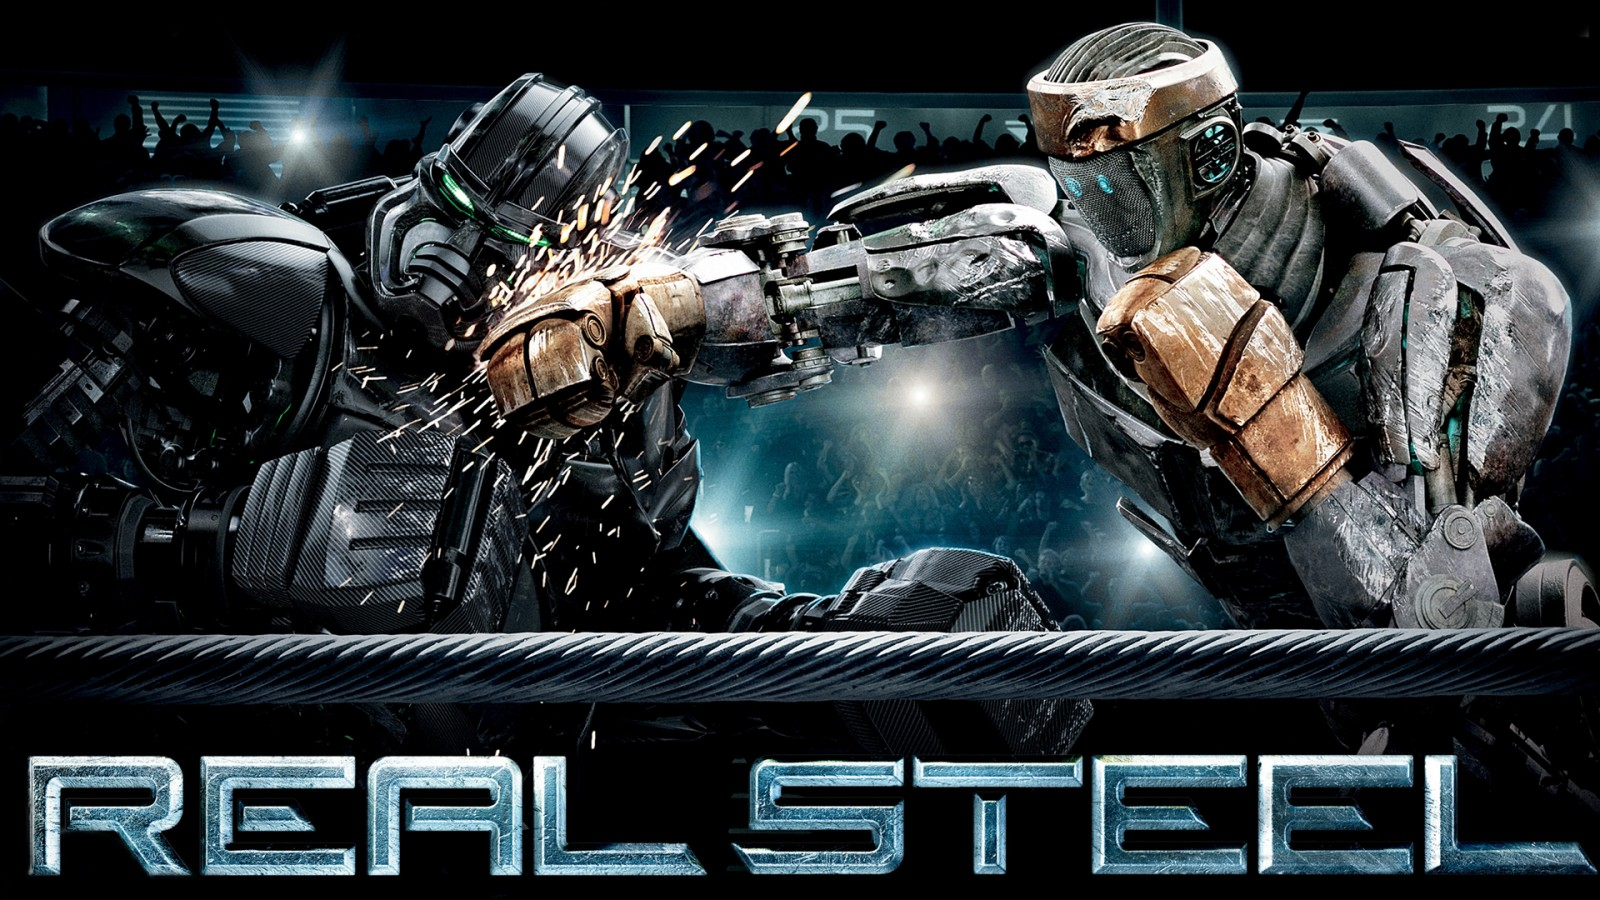 3d Windows Logo Wallpaper Real Steel Battle Wallpapers Hd Wallpapers Id 10393